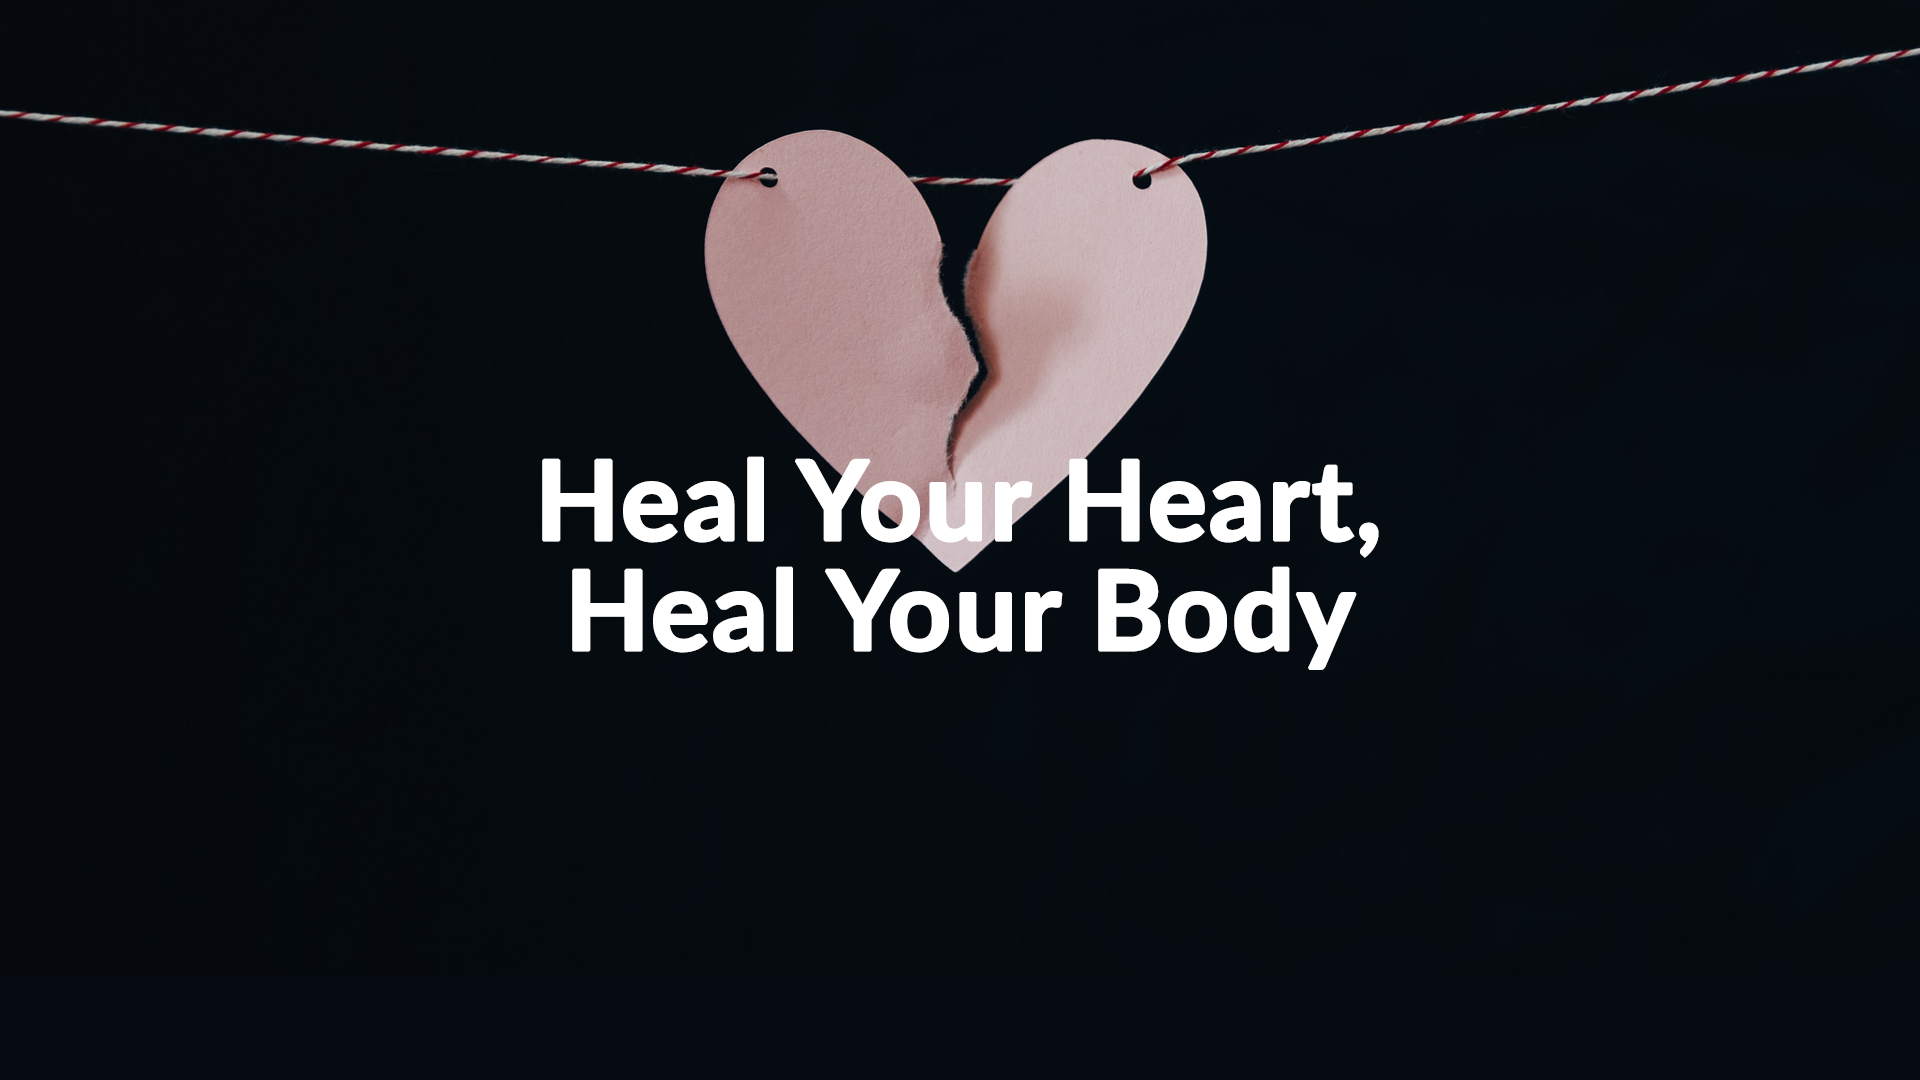 Heal Your Heart, Heal Your Body 7-28-19